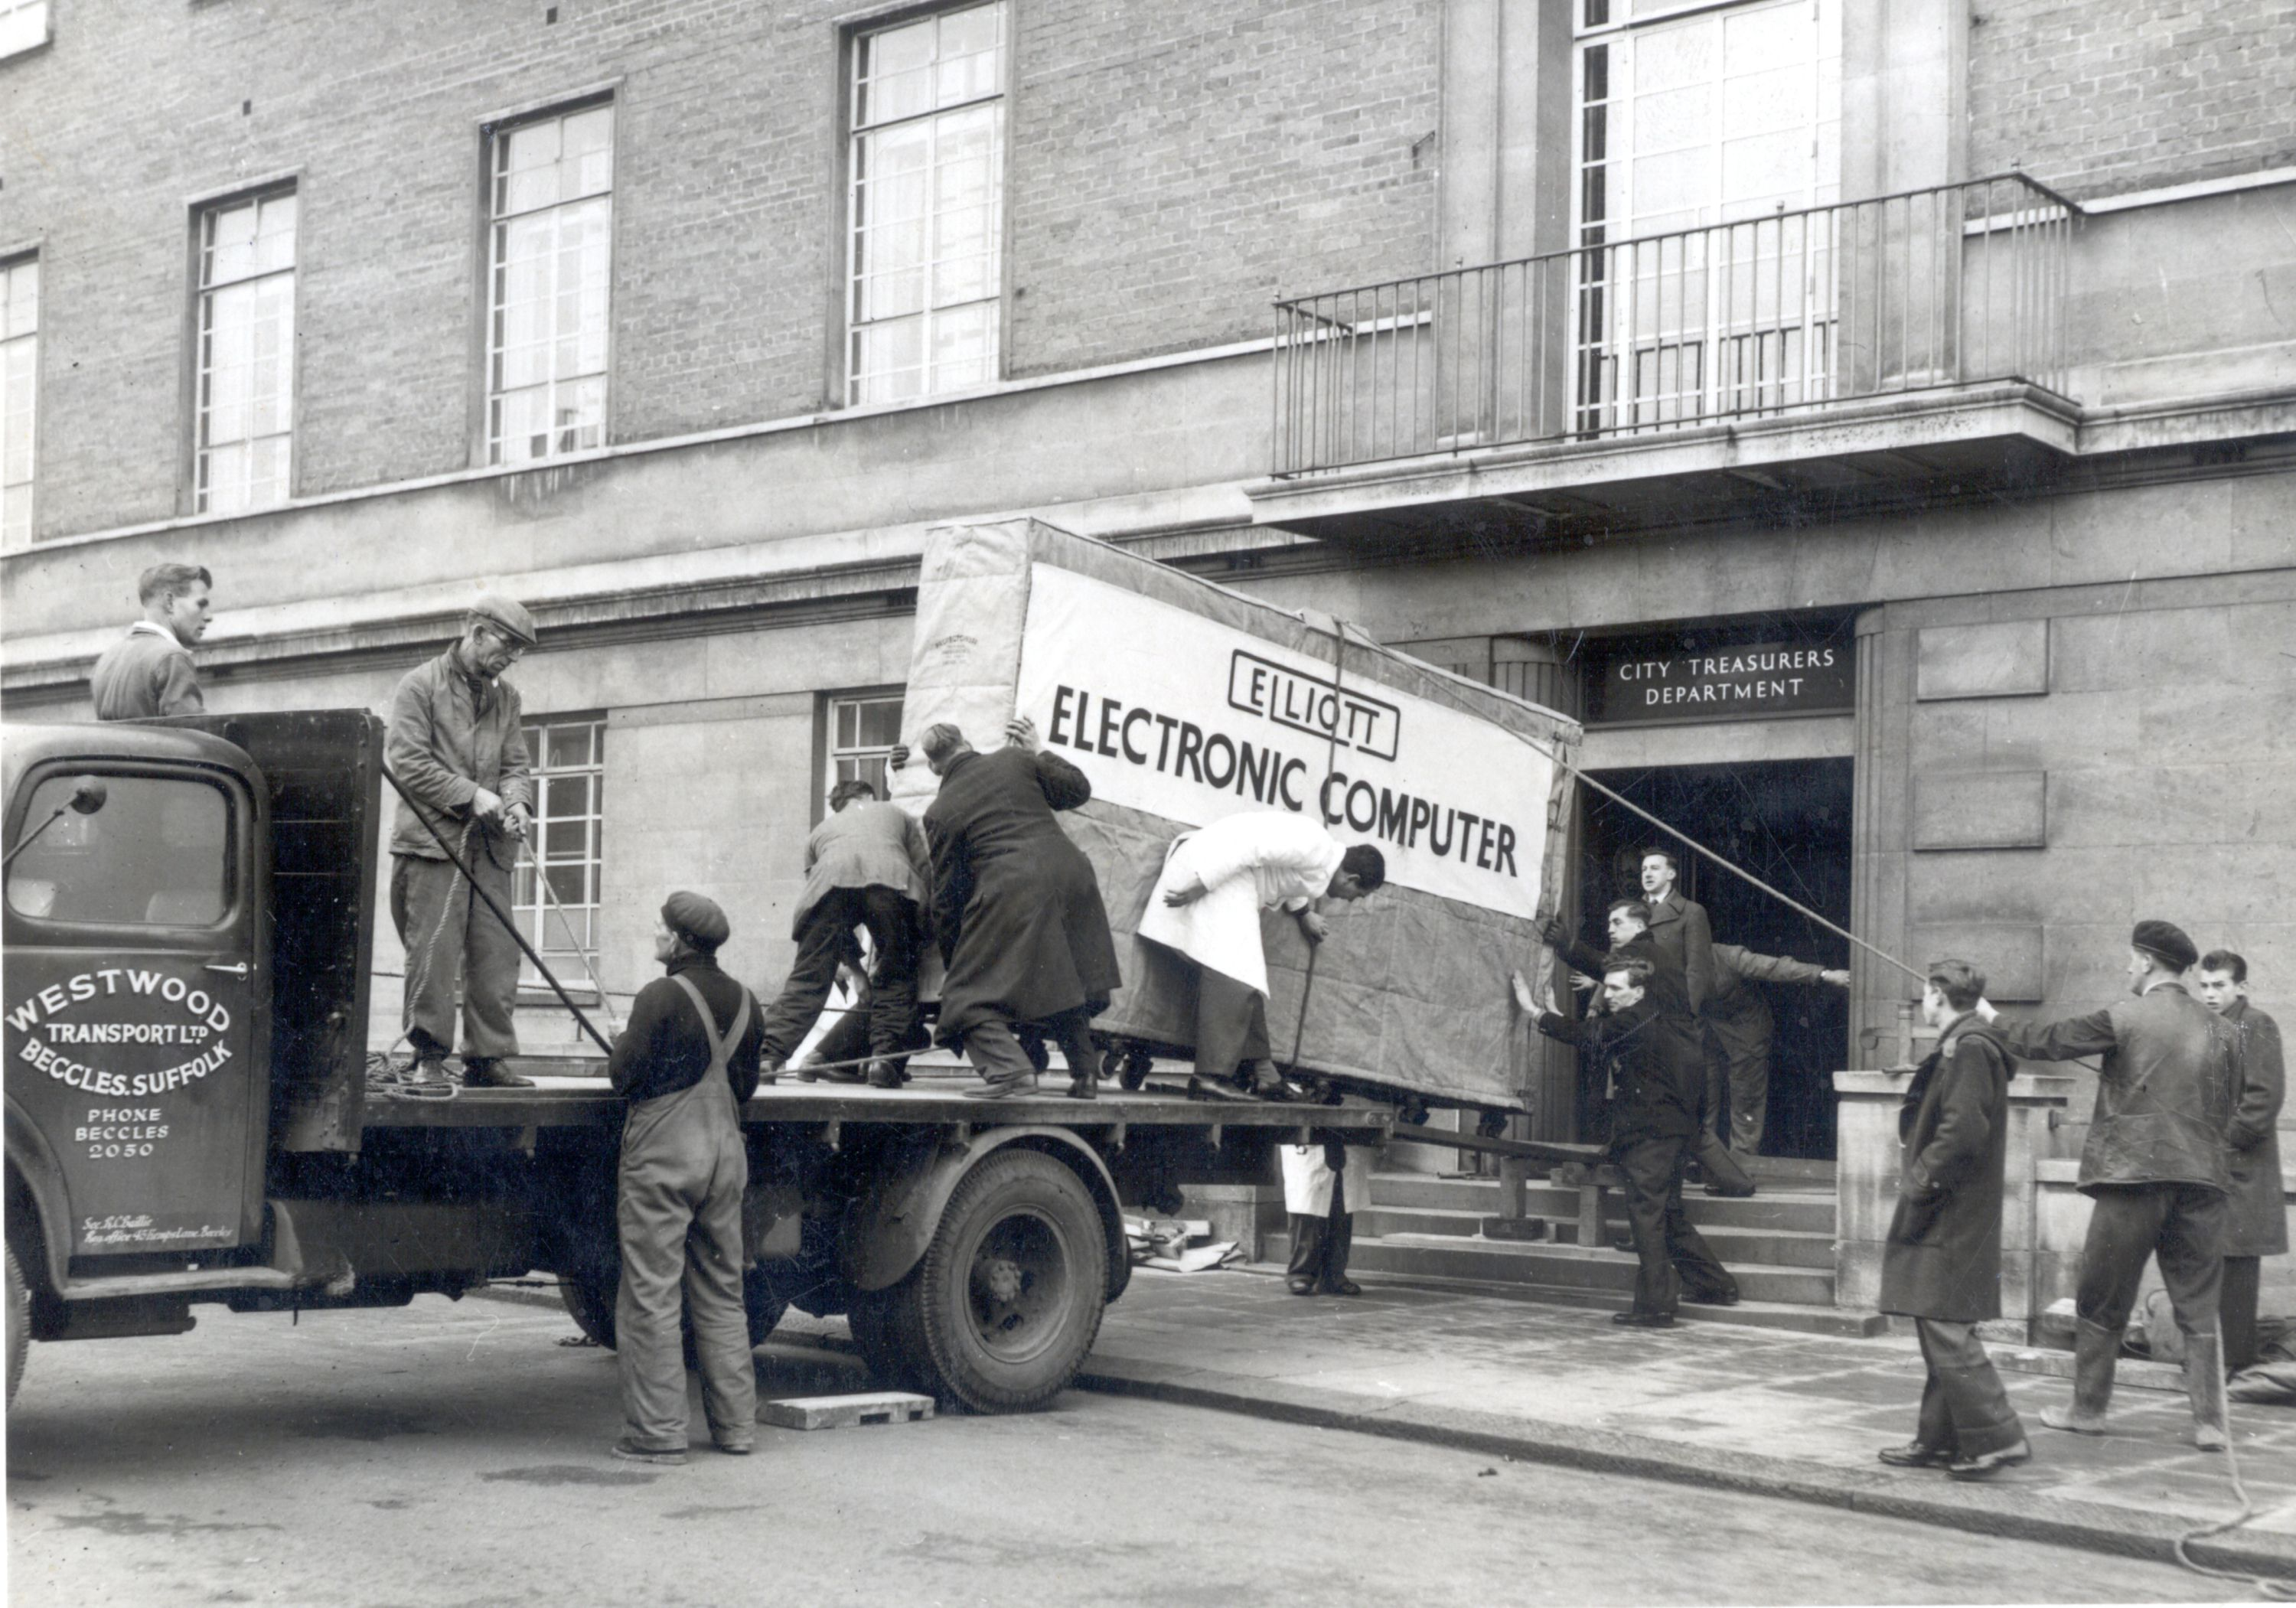 Photograph of Norwich City Council's first computer being delivered to the City Treasurer's Department in Bethel Street, Norwich, 1957. Norfolk Record Office: ACC 2005/170 (facsimile)